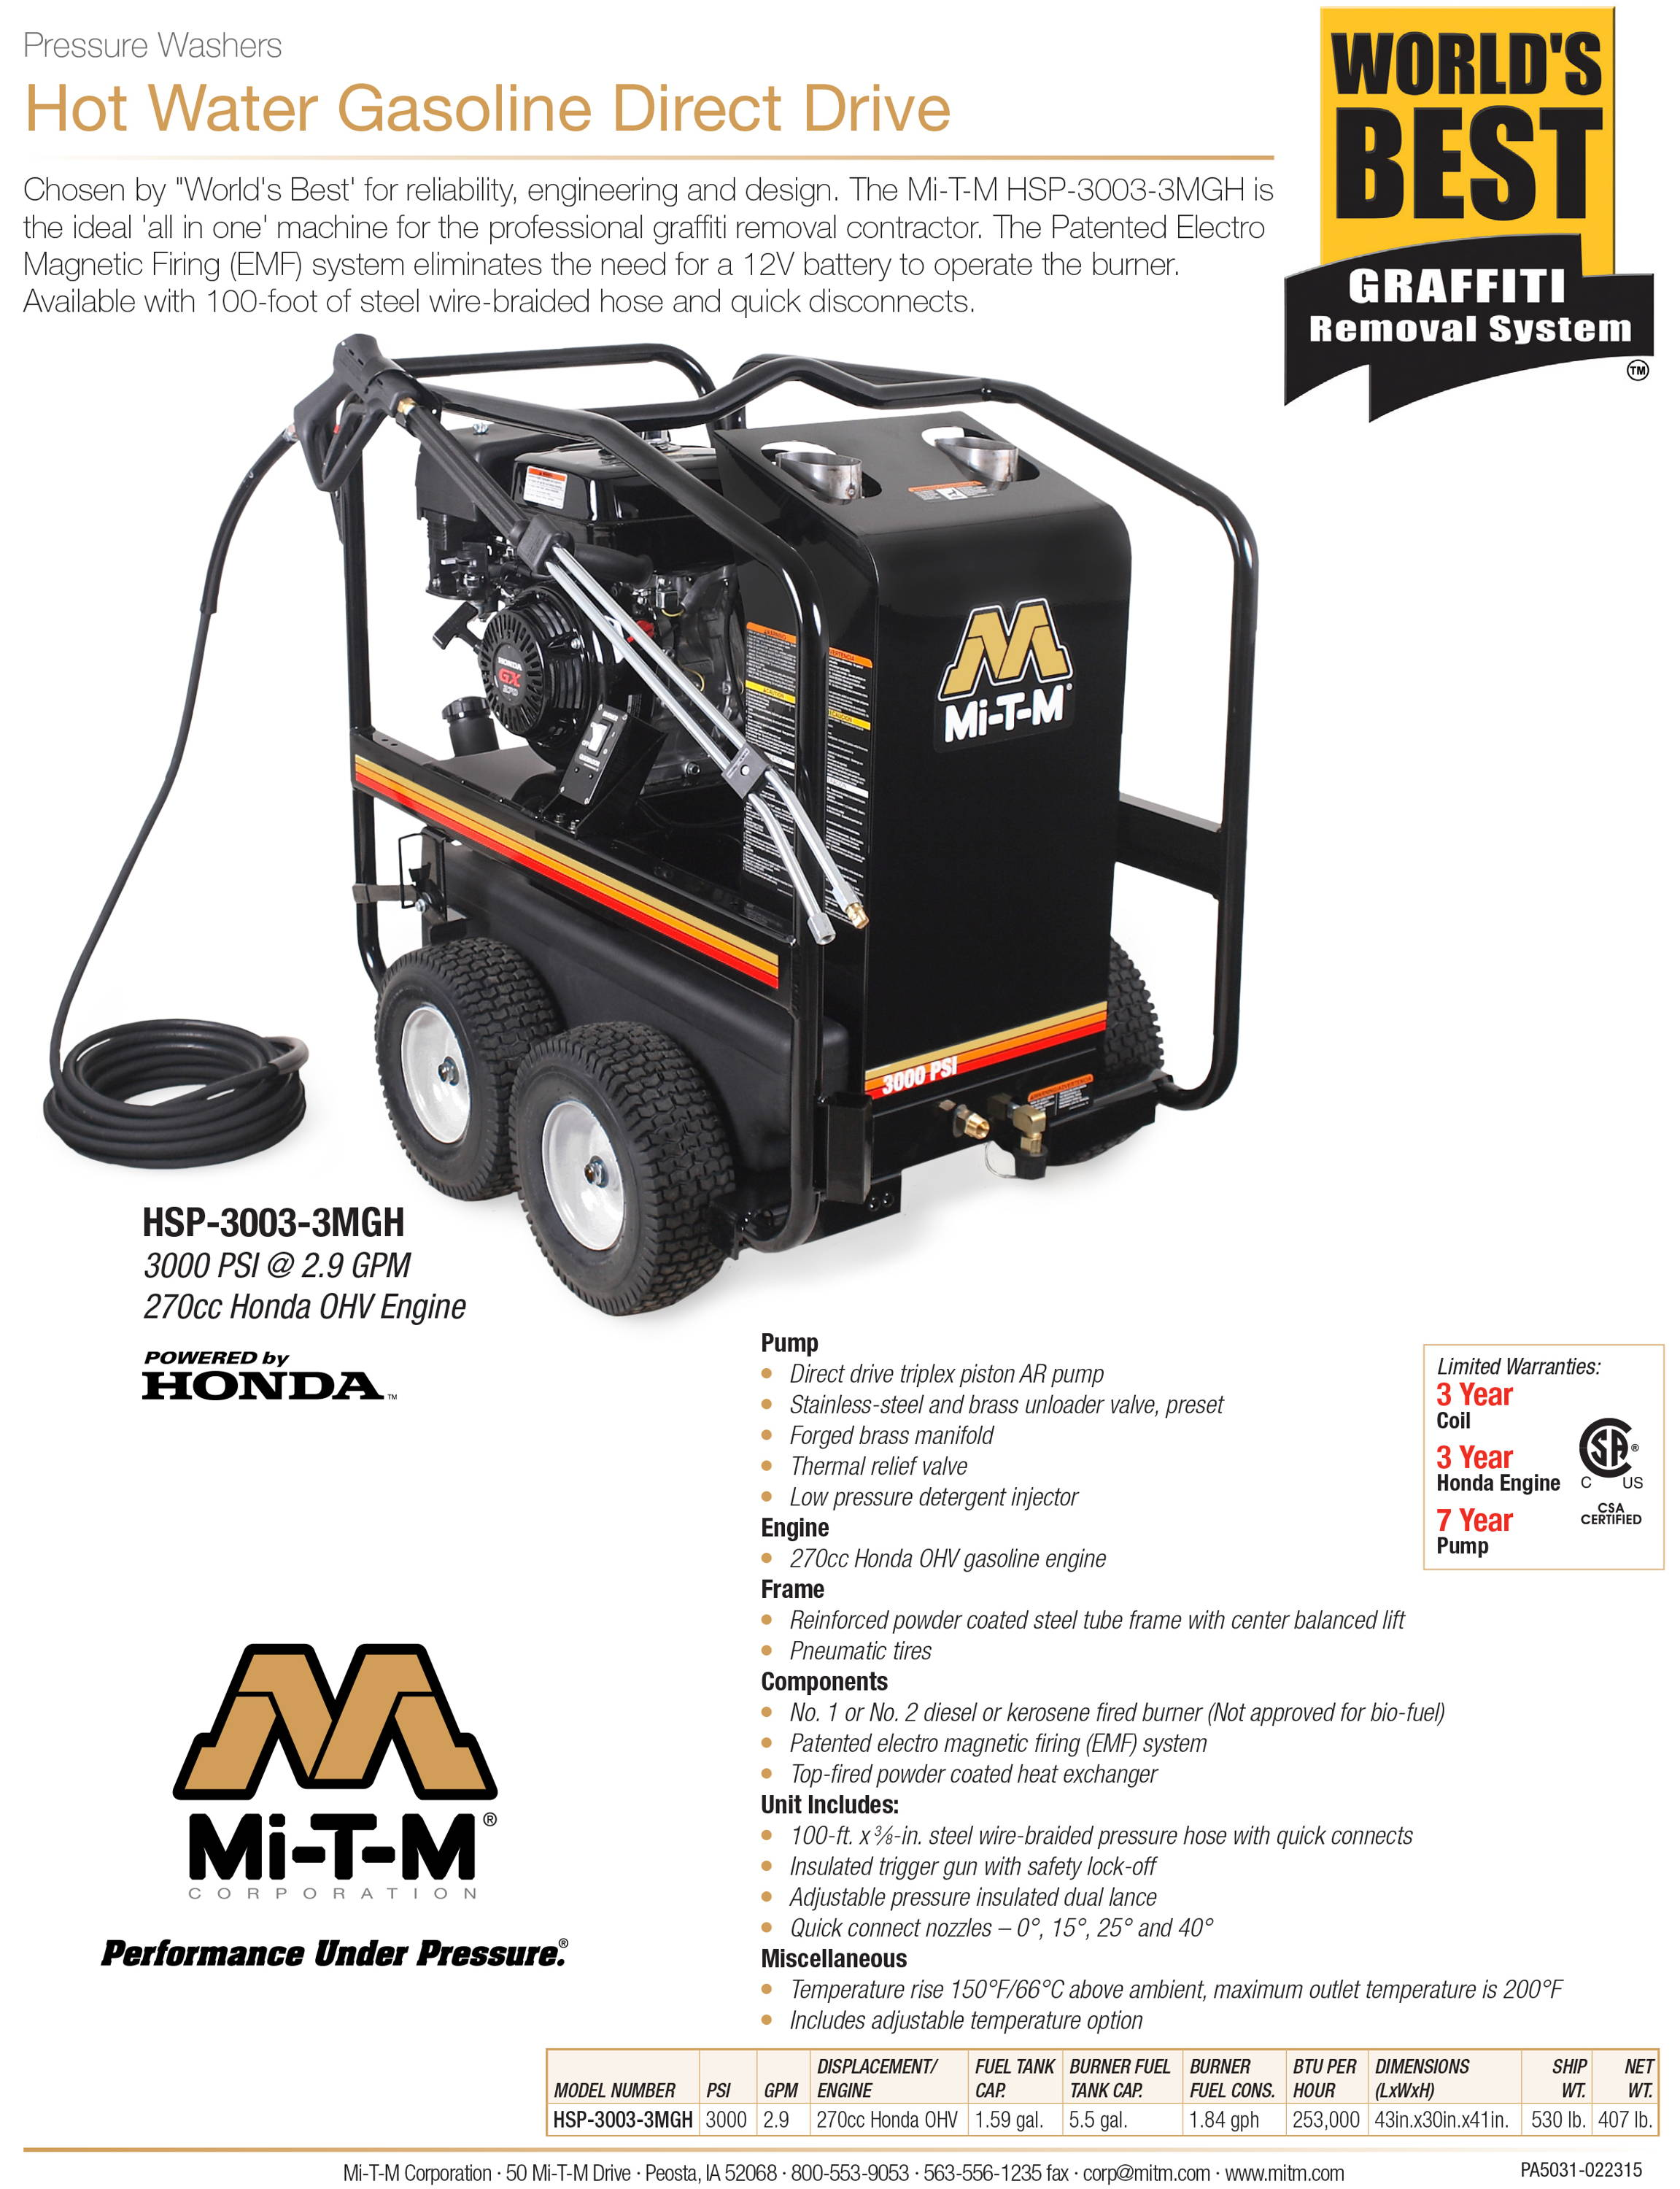 About Mi-T-M Hot Water Pressure Washer and Worlds Best Graffiti Removal System